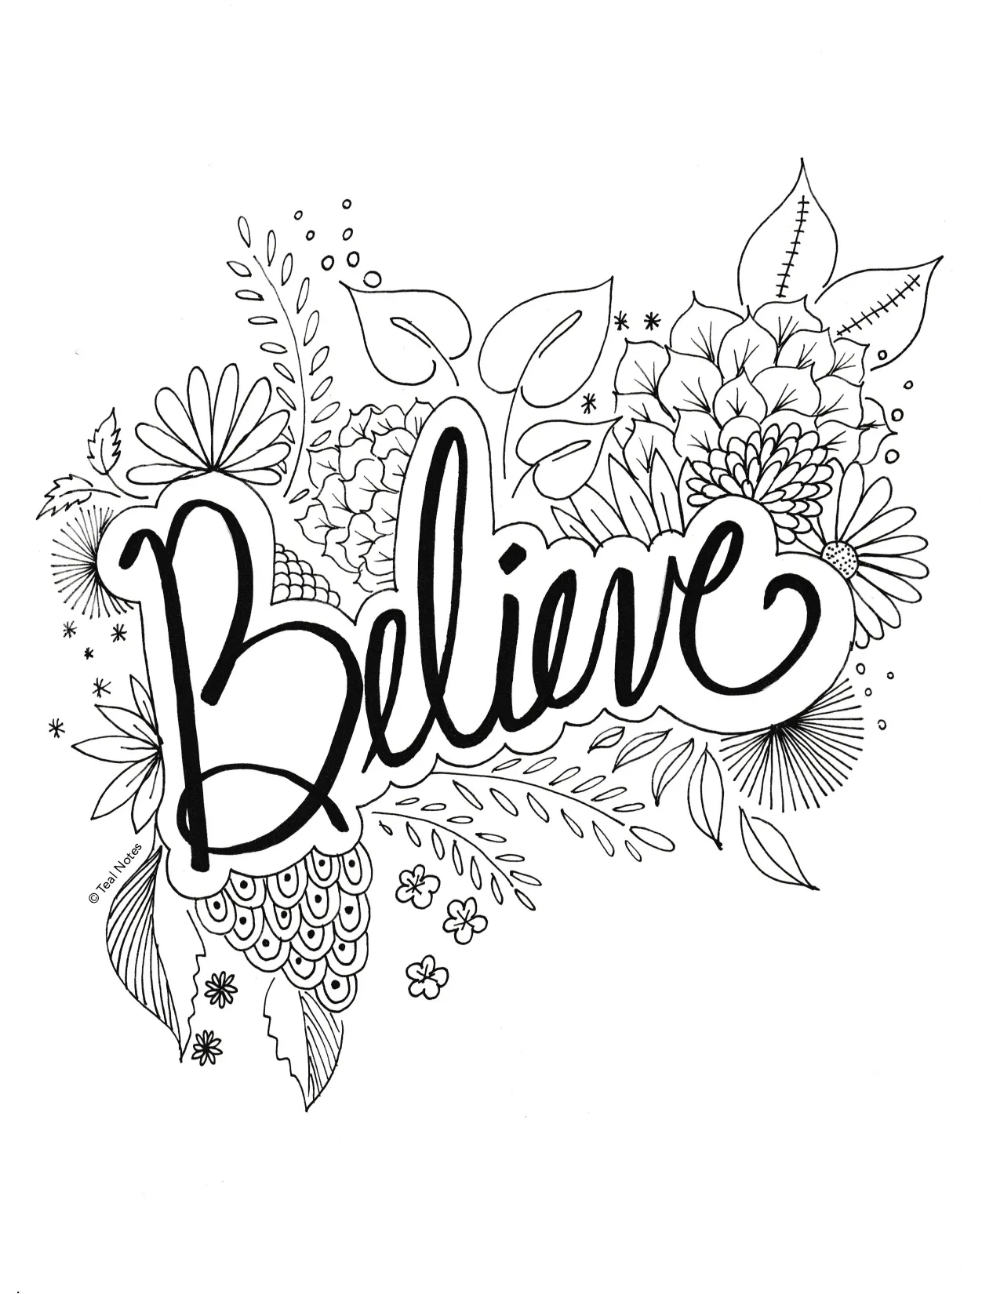 5 Quote Coloring Pages You Can Print And Color On Your Free Time Quote Coloring Pages Coloring Pages For Grown Ups Easy Coloring Pages